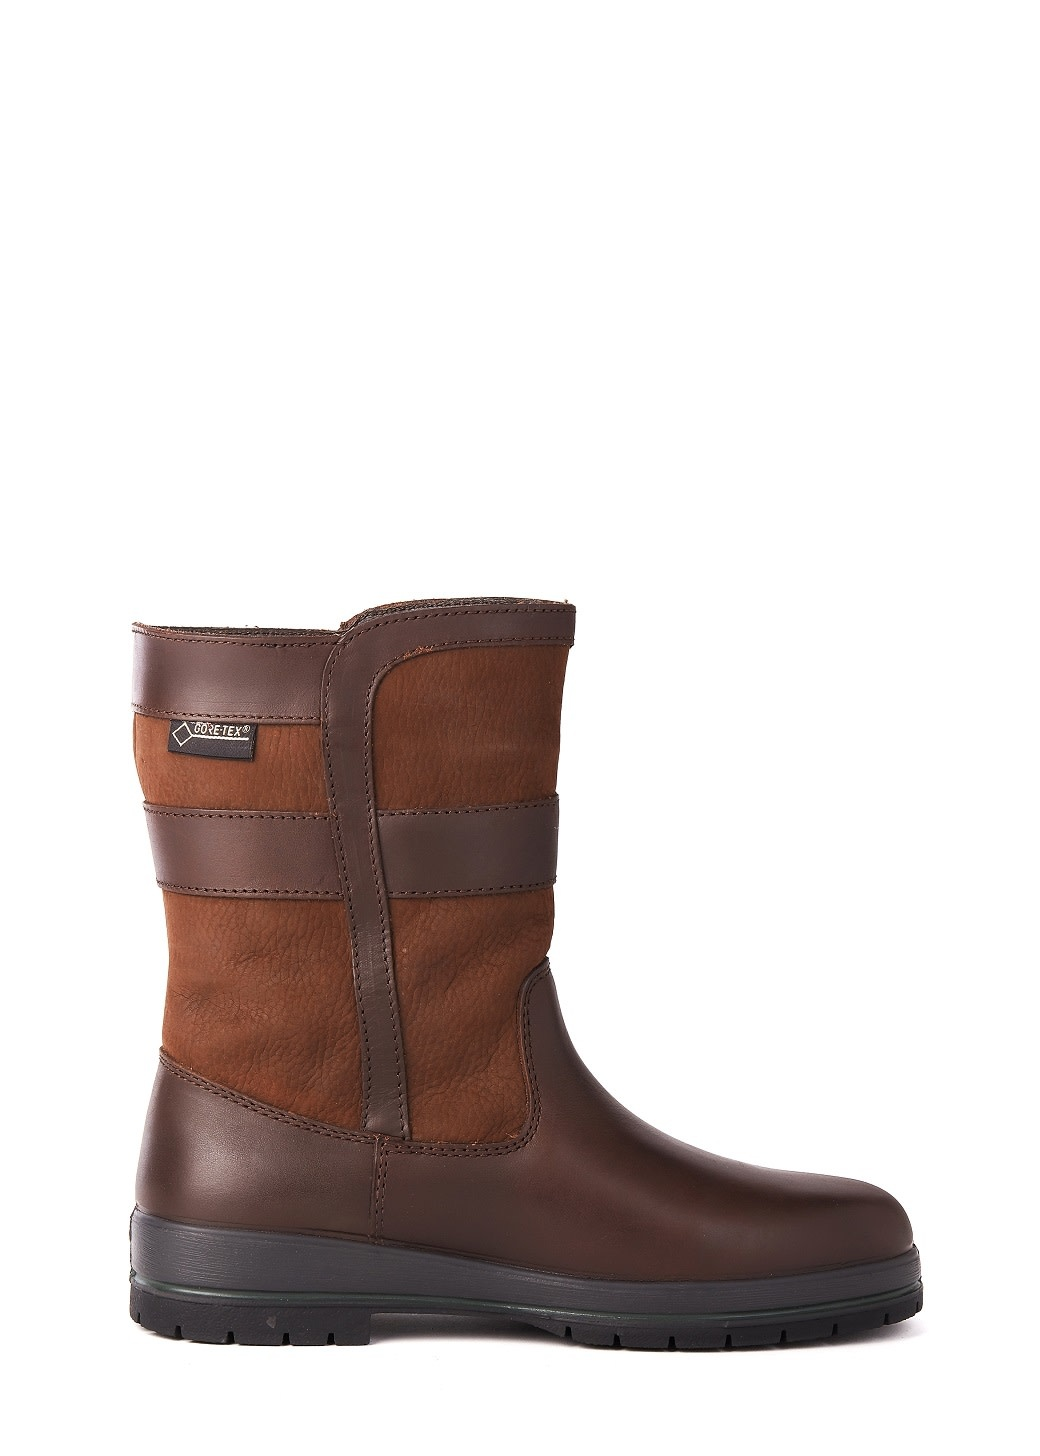 Dubarry Roscommon - Walnut-4